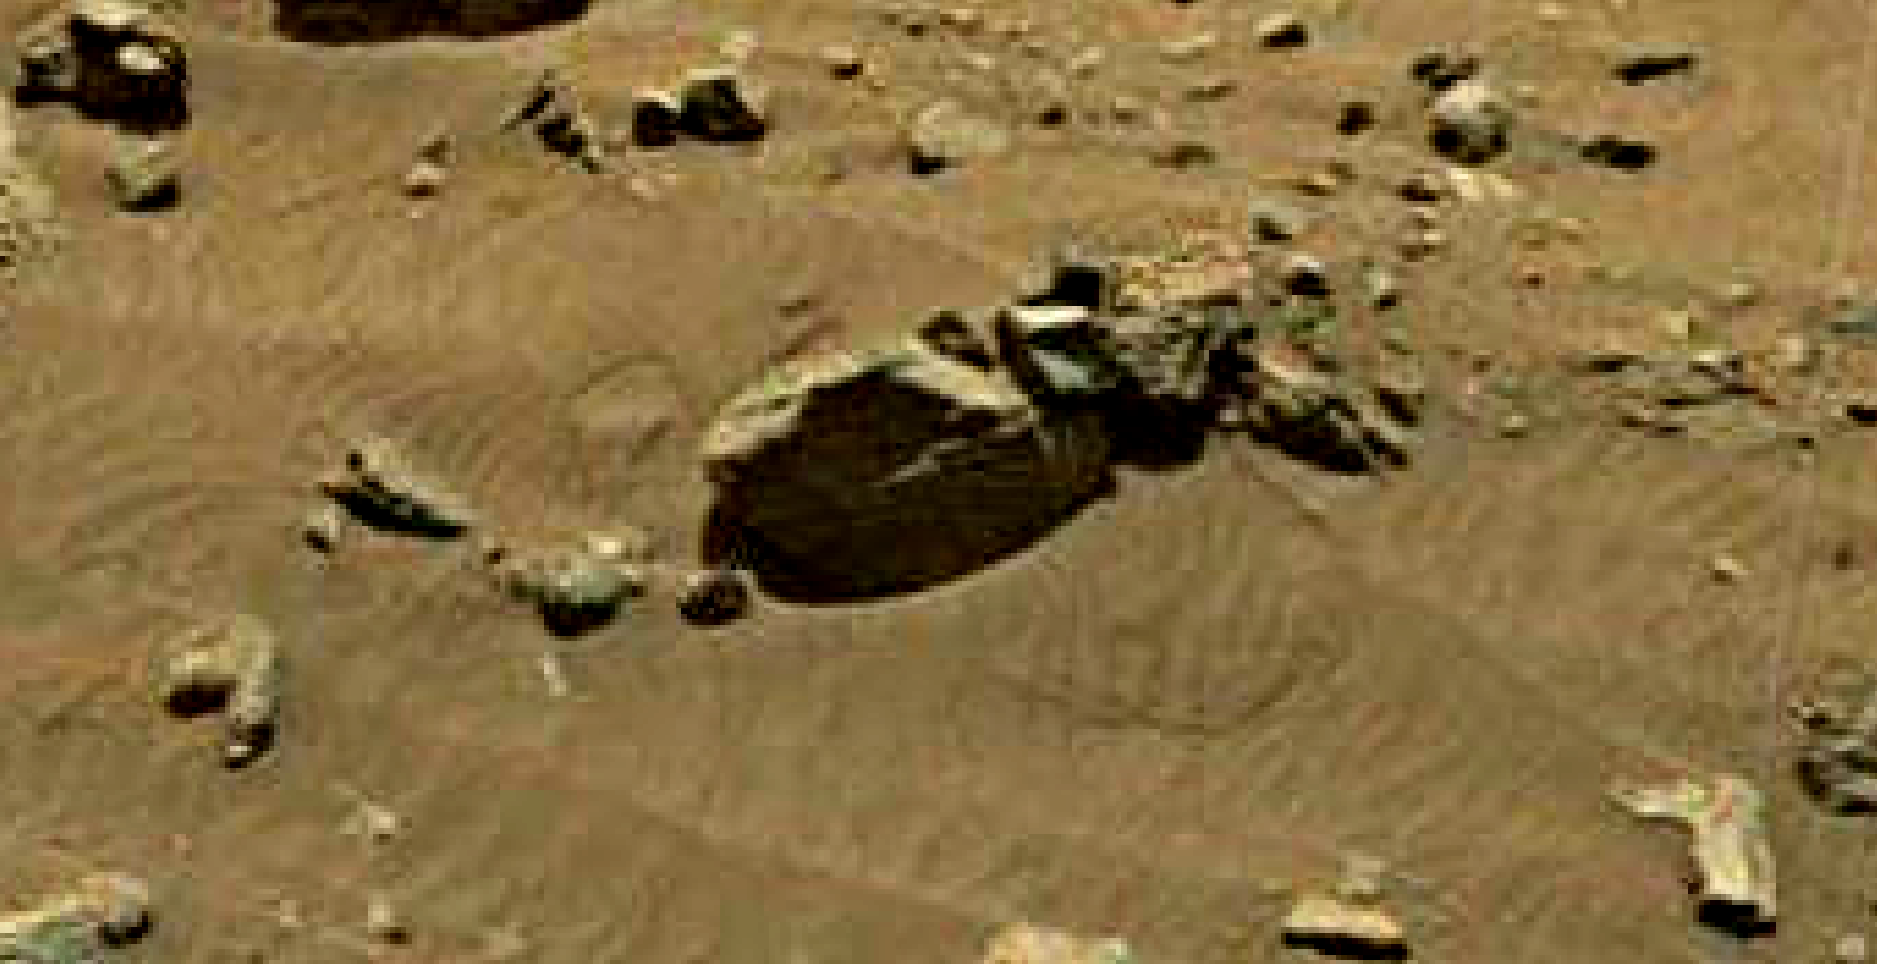 mars sol 1399 anomaly artifacts 15 was life on mars